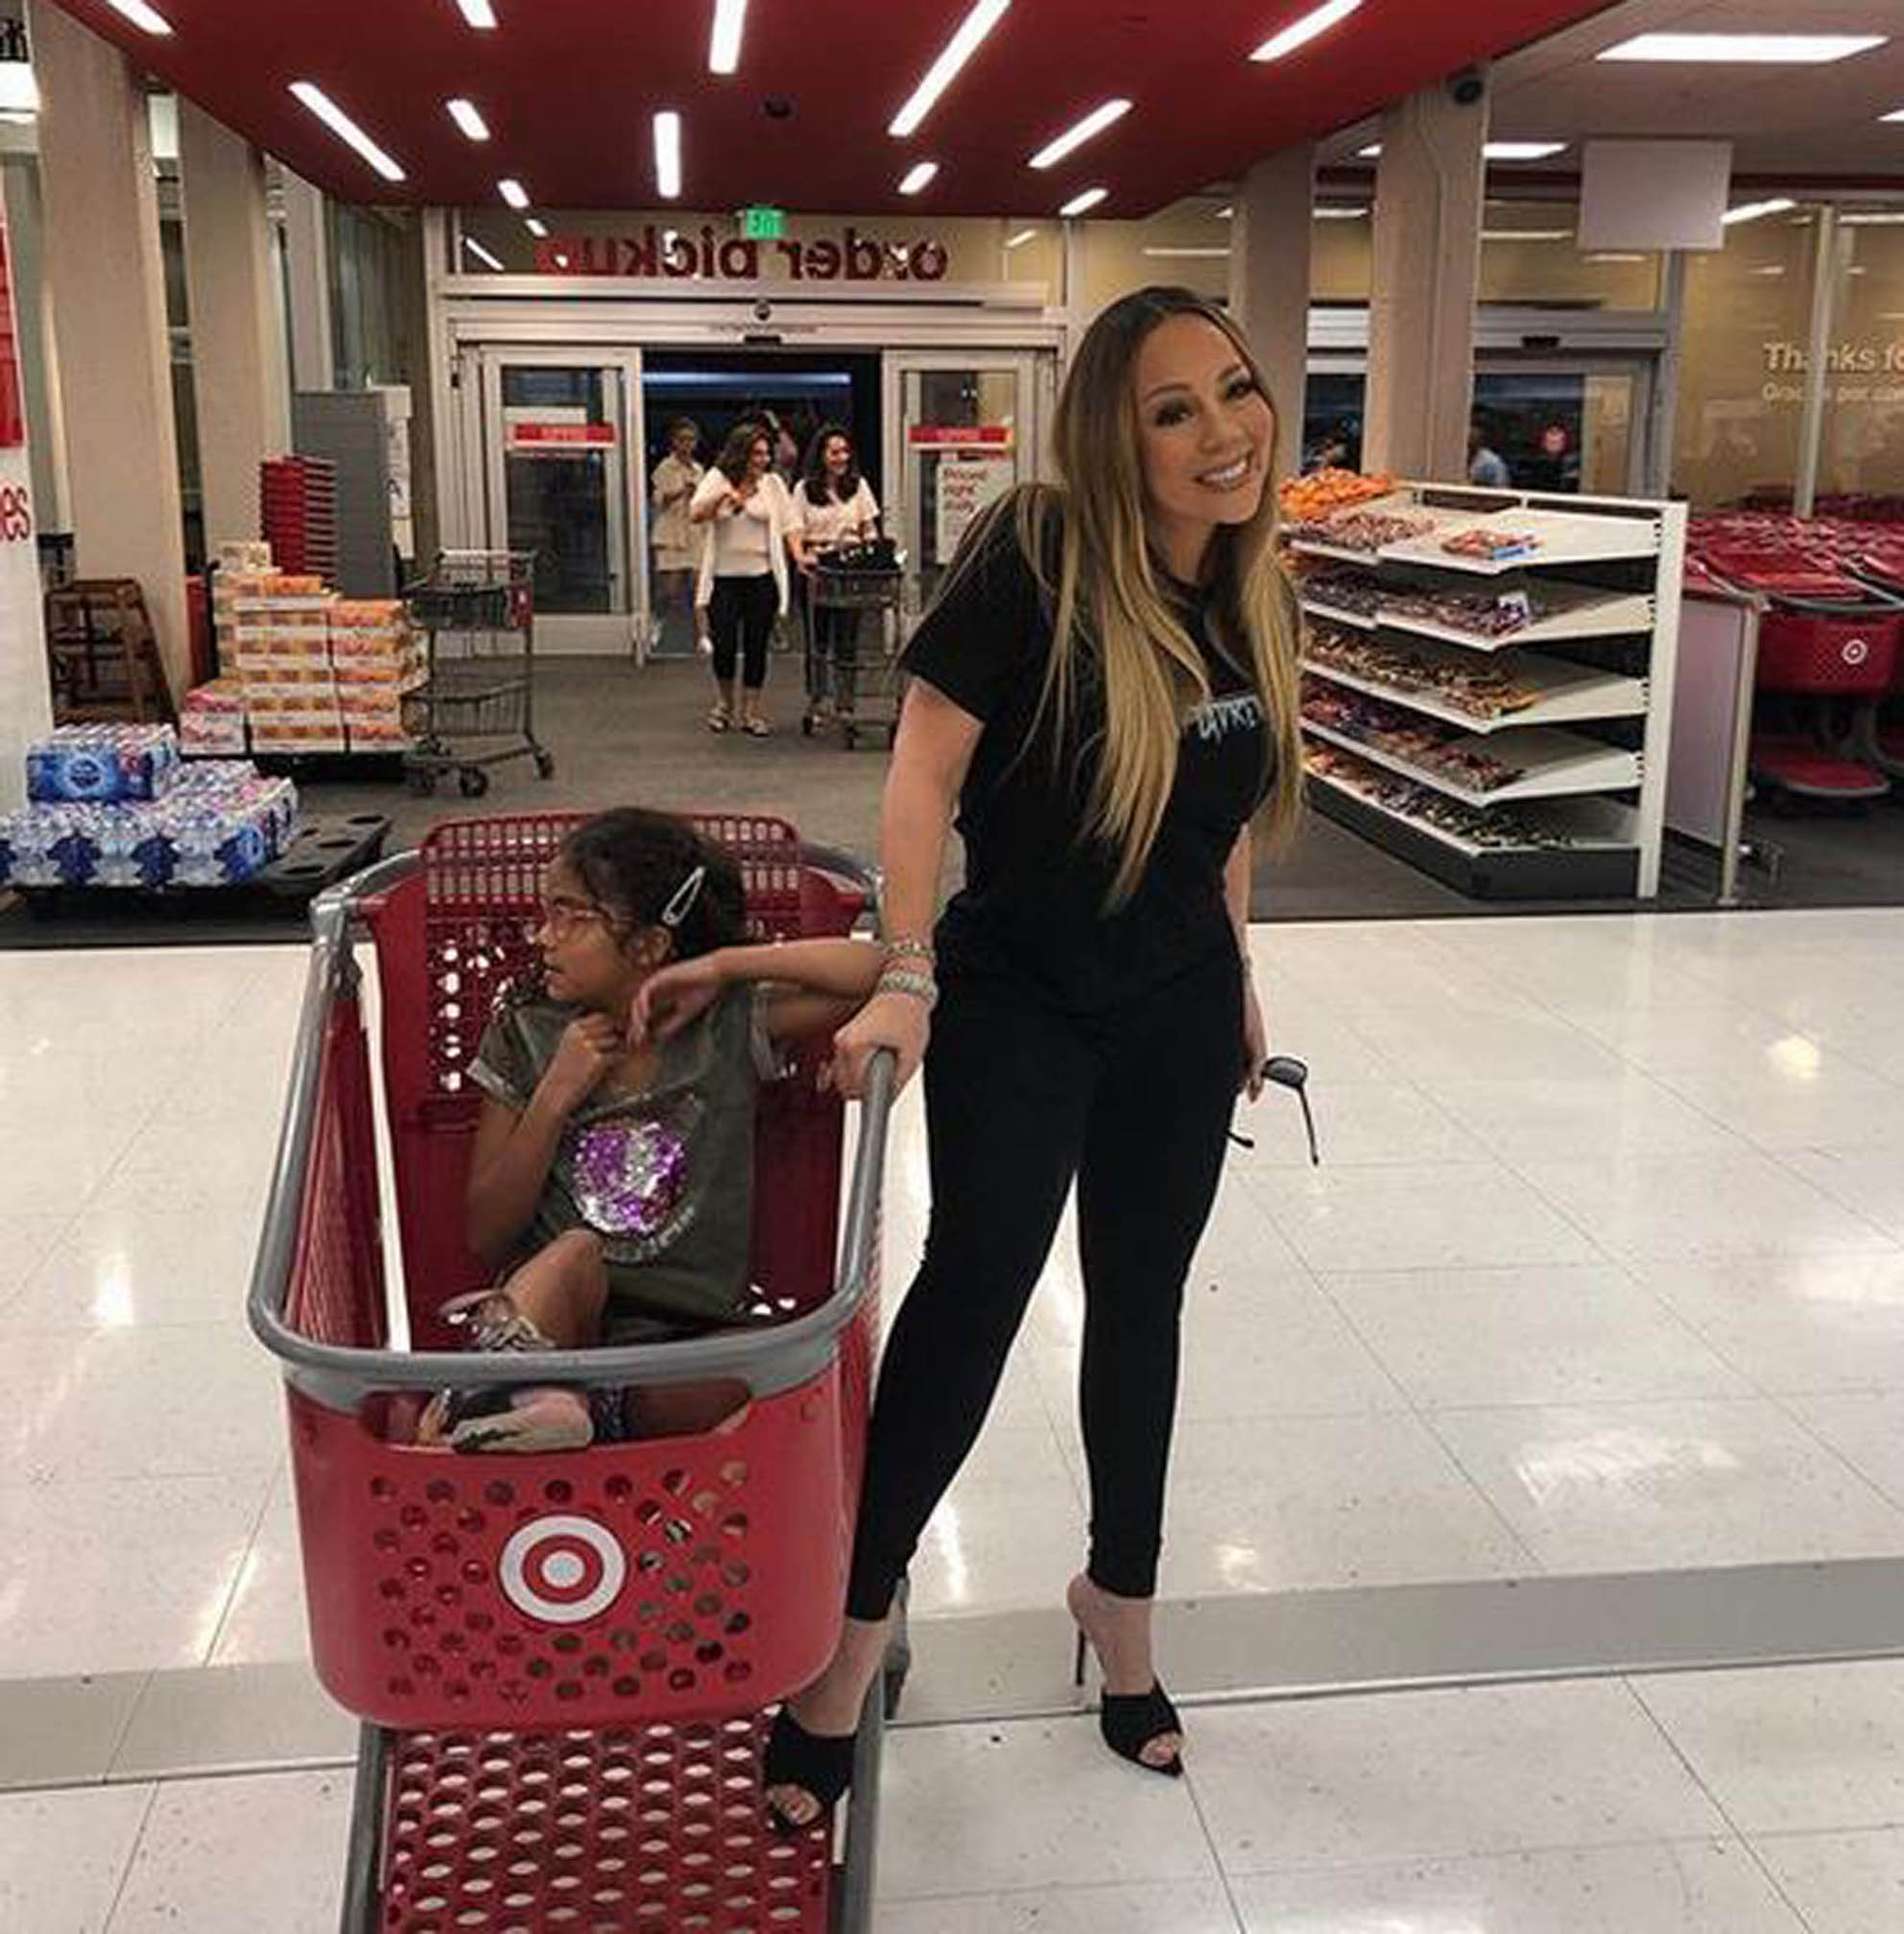 11-9-2019  Celebrity Selfies   Pictured: Mariah Carey, Image: 470327450, License: Rights-managed, Restrictions: , Model Release: no, Credit line: Profimedia, Planet